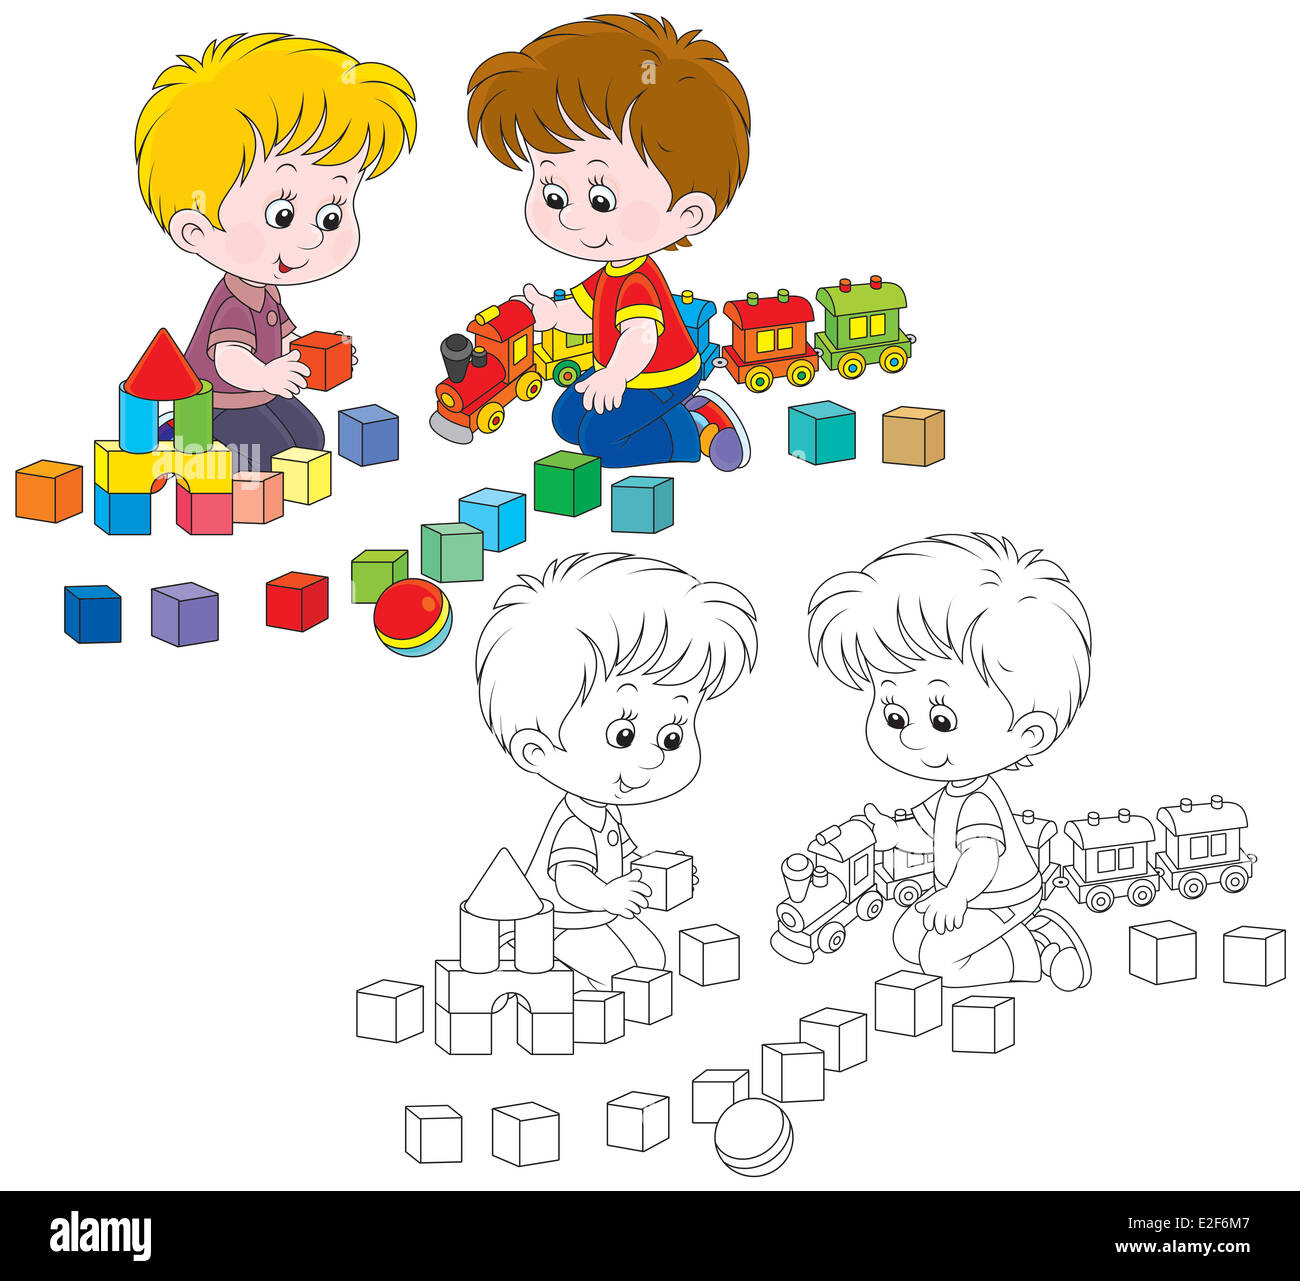 Little boys play with a toy train and bricks - Stock Image